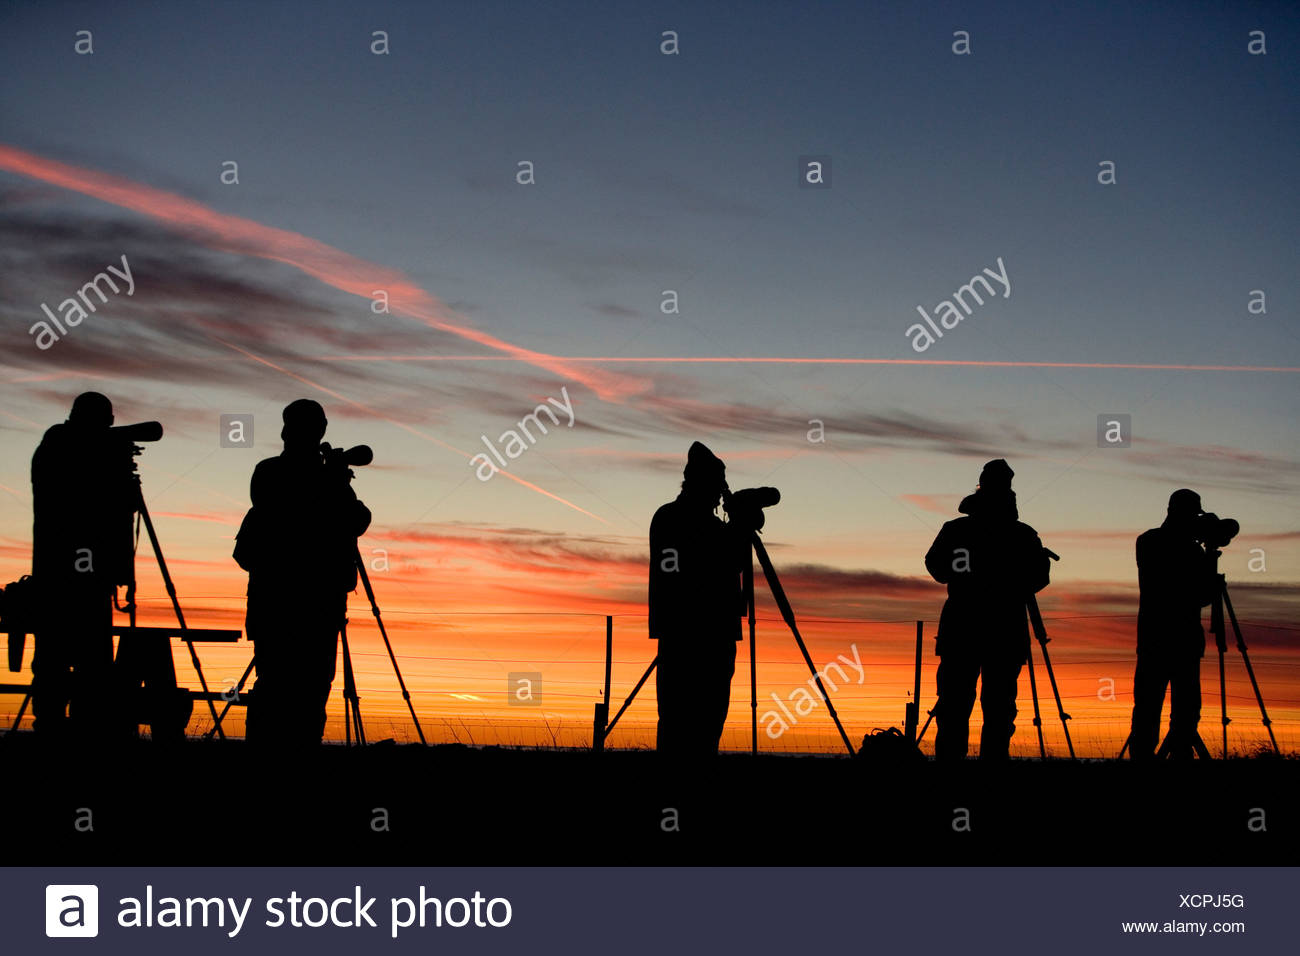 Silhouette bird watchers in a line against dramatic sky at dawn - Stock Image